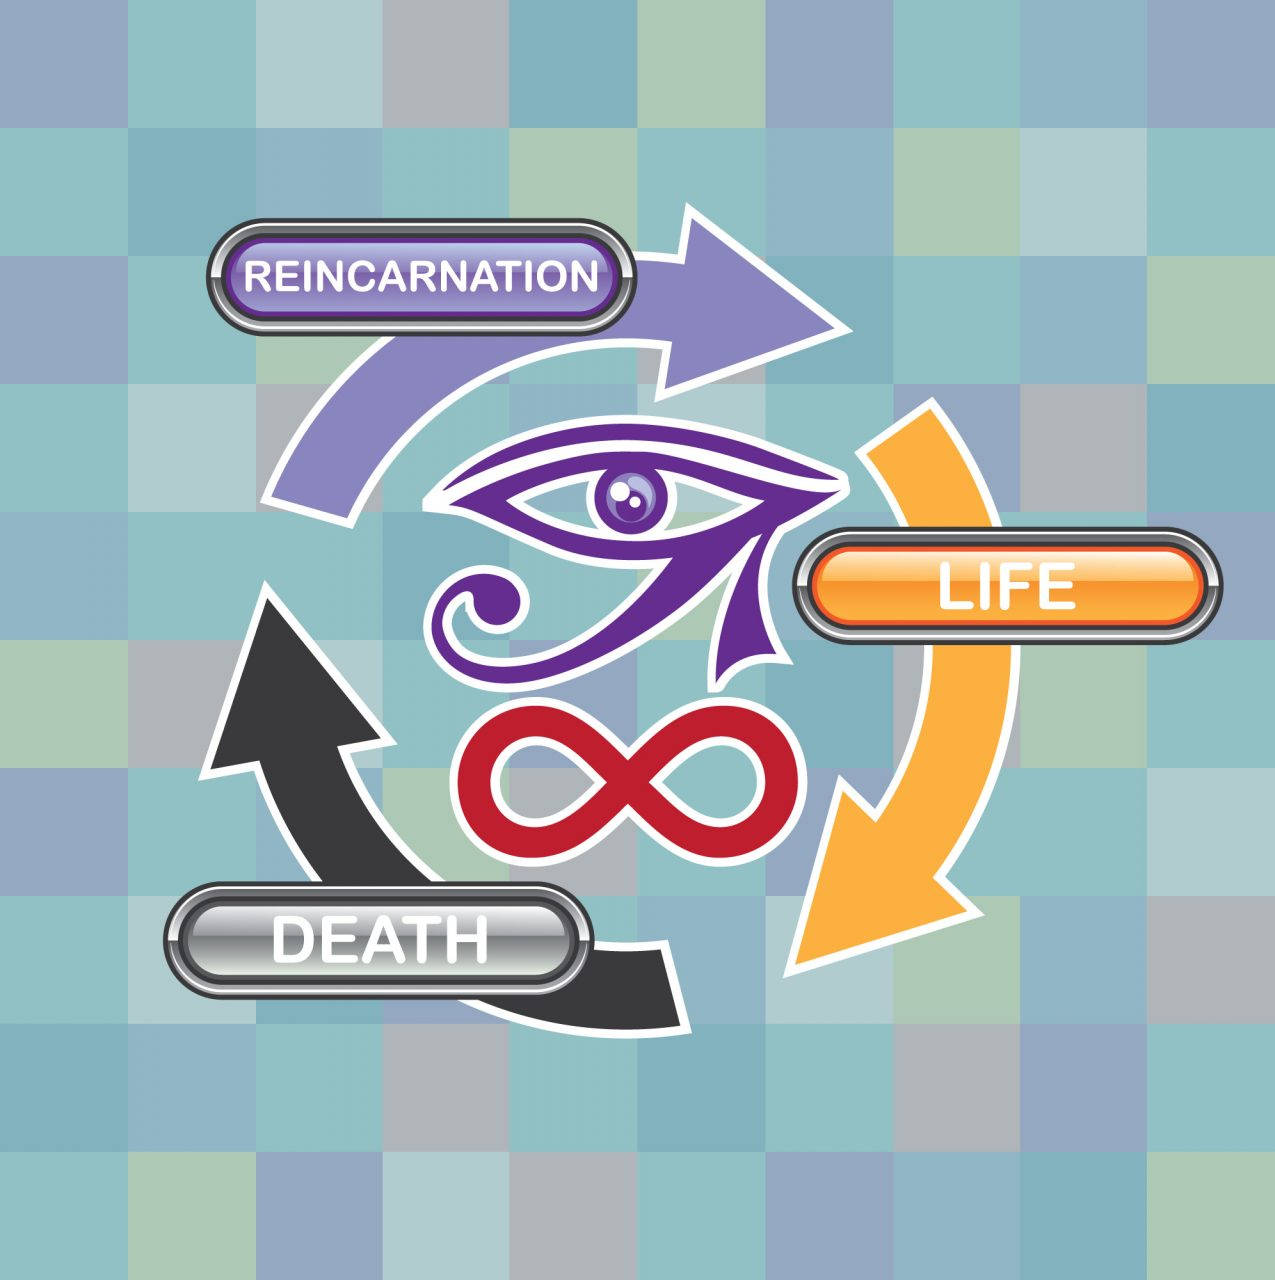 Circle of Reincarnation Life and Death